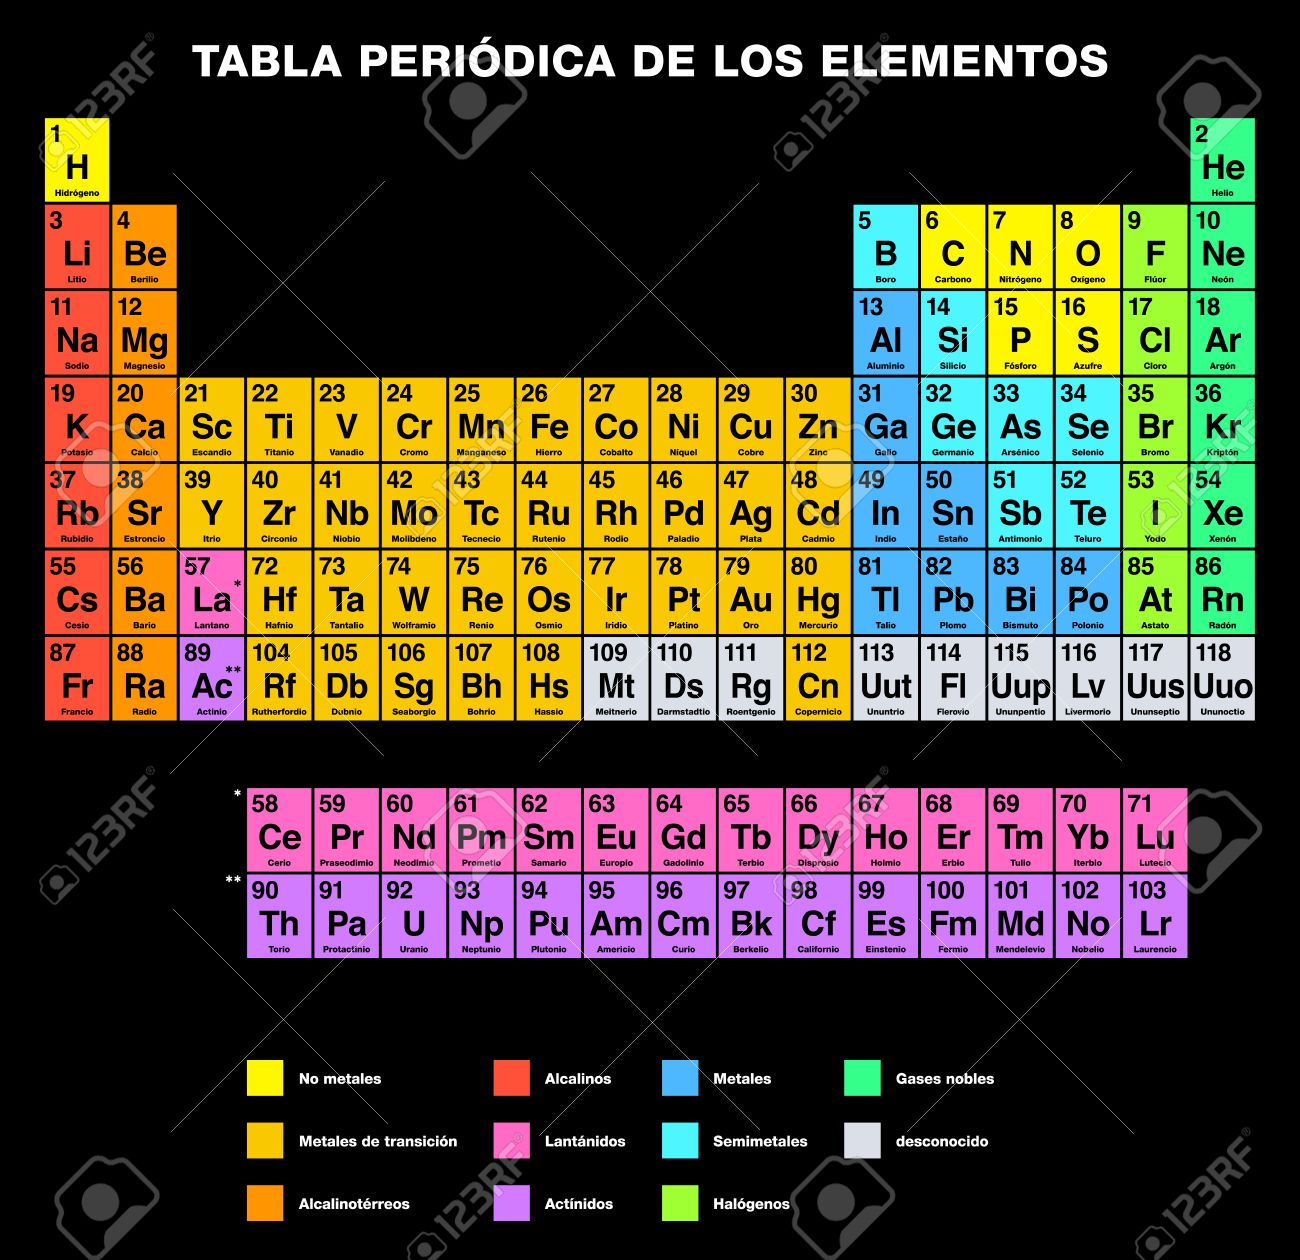 Periodic table of the elements spanish labeling tabular periodic table of the elements spanish labeling tabular arrangement of chemical elements with atomic numbers urtaz